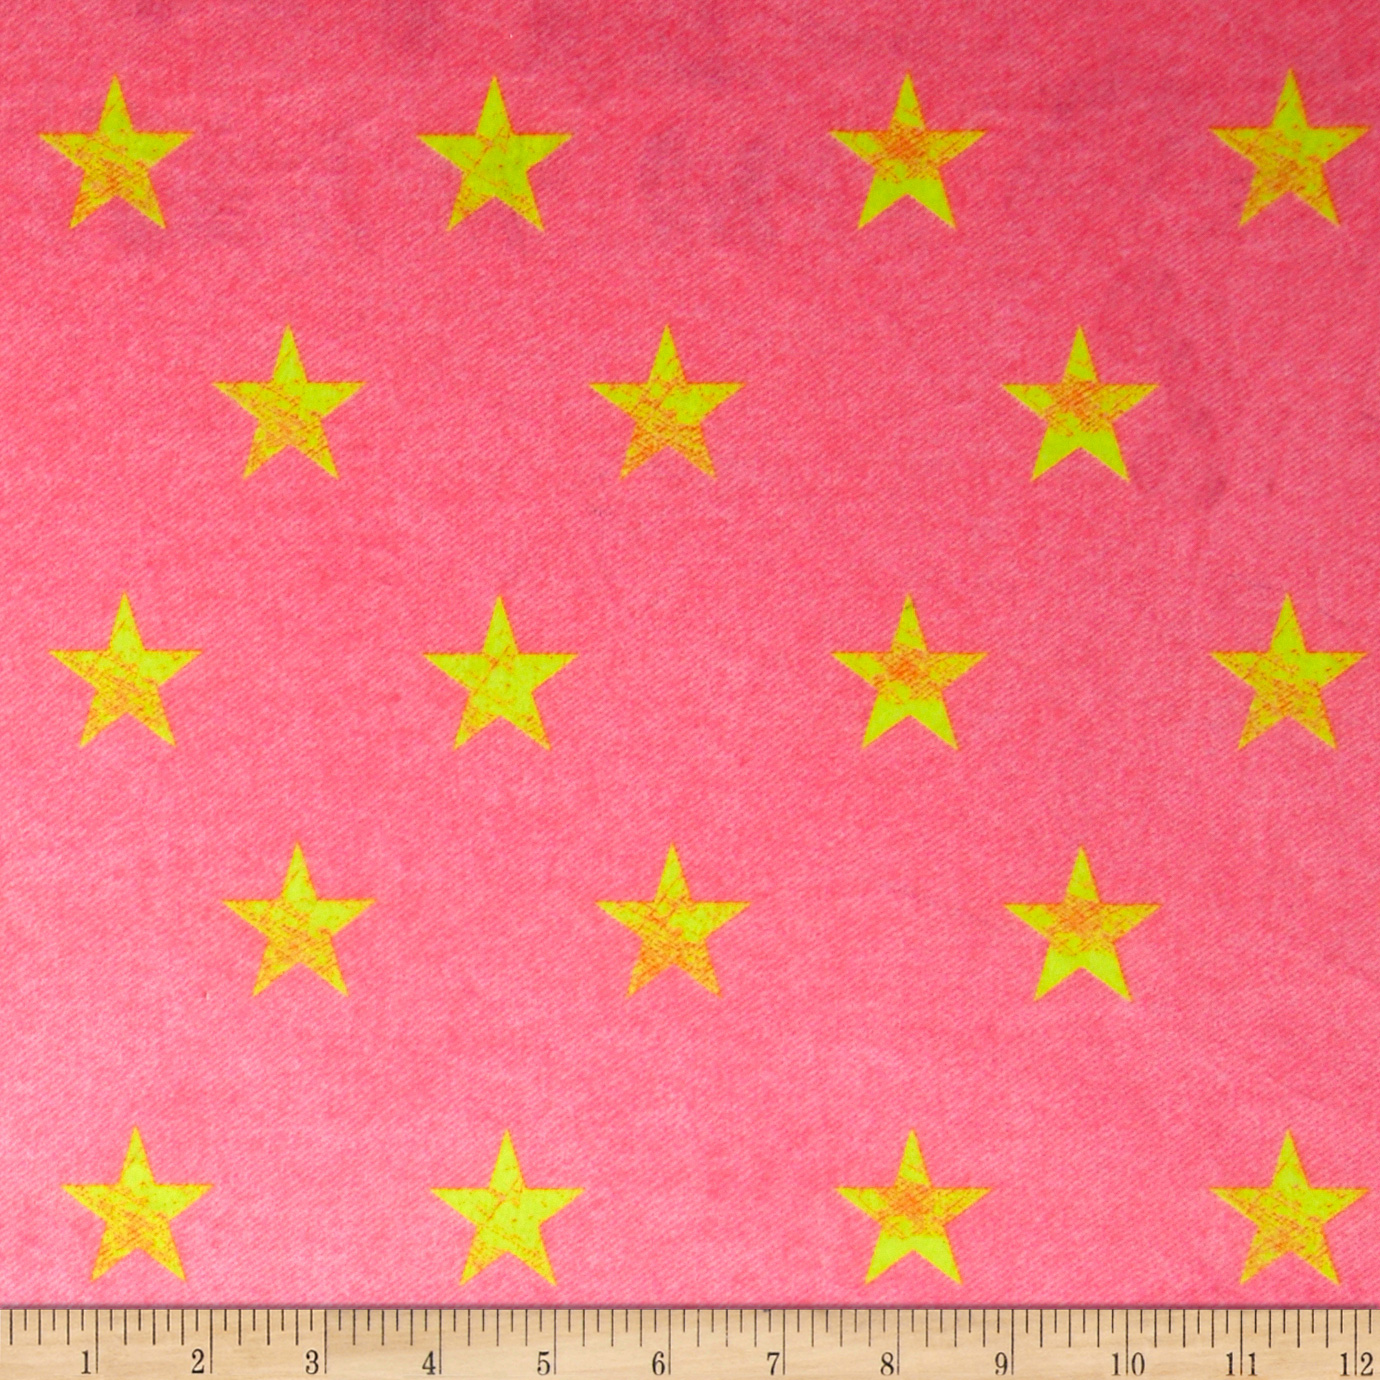 Minky Stars Pink Denim/Neon Yellow Fabric